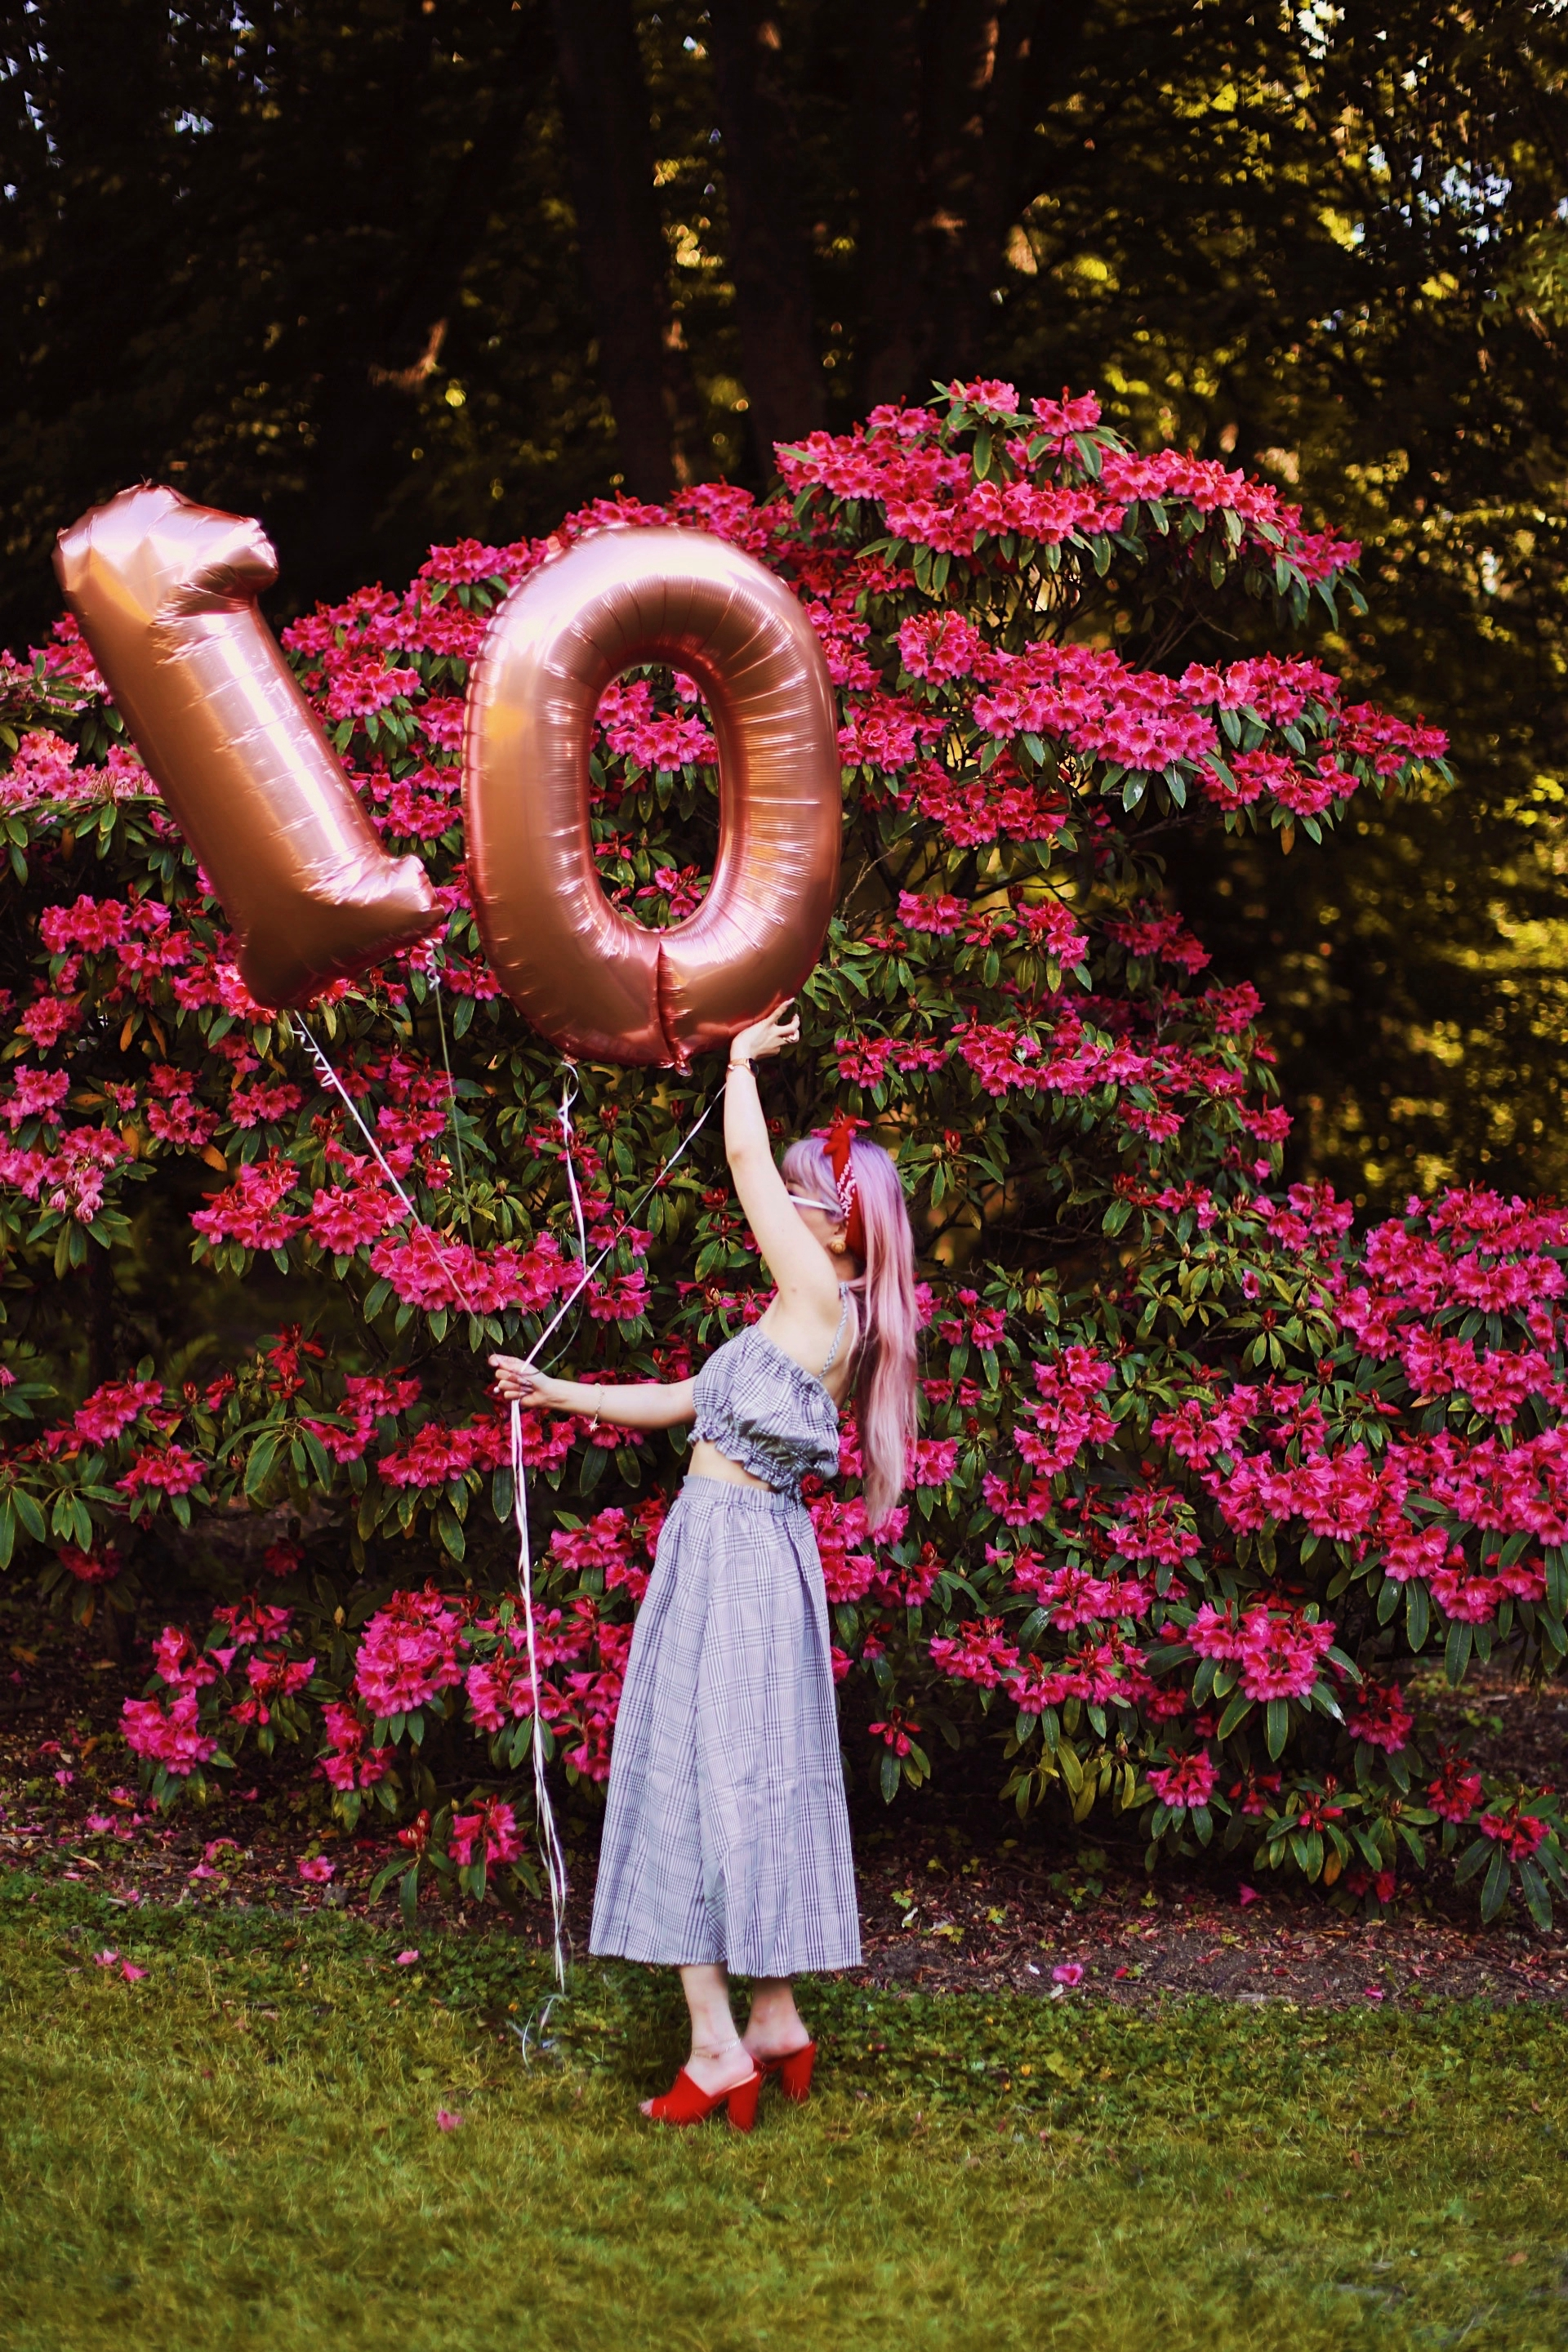 Aika's Love Closet-Seattle Style Life Style Blogger-Japanese-10 Year Anniversary-living in America-what I've learned from Living Abroad-life lessons-pink hair-zero uv heart sunglasses-rose gold balloons-smile 15